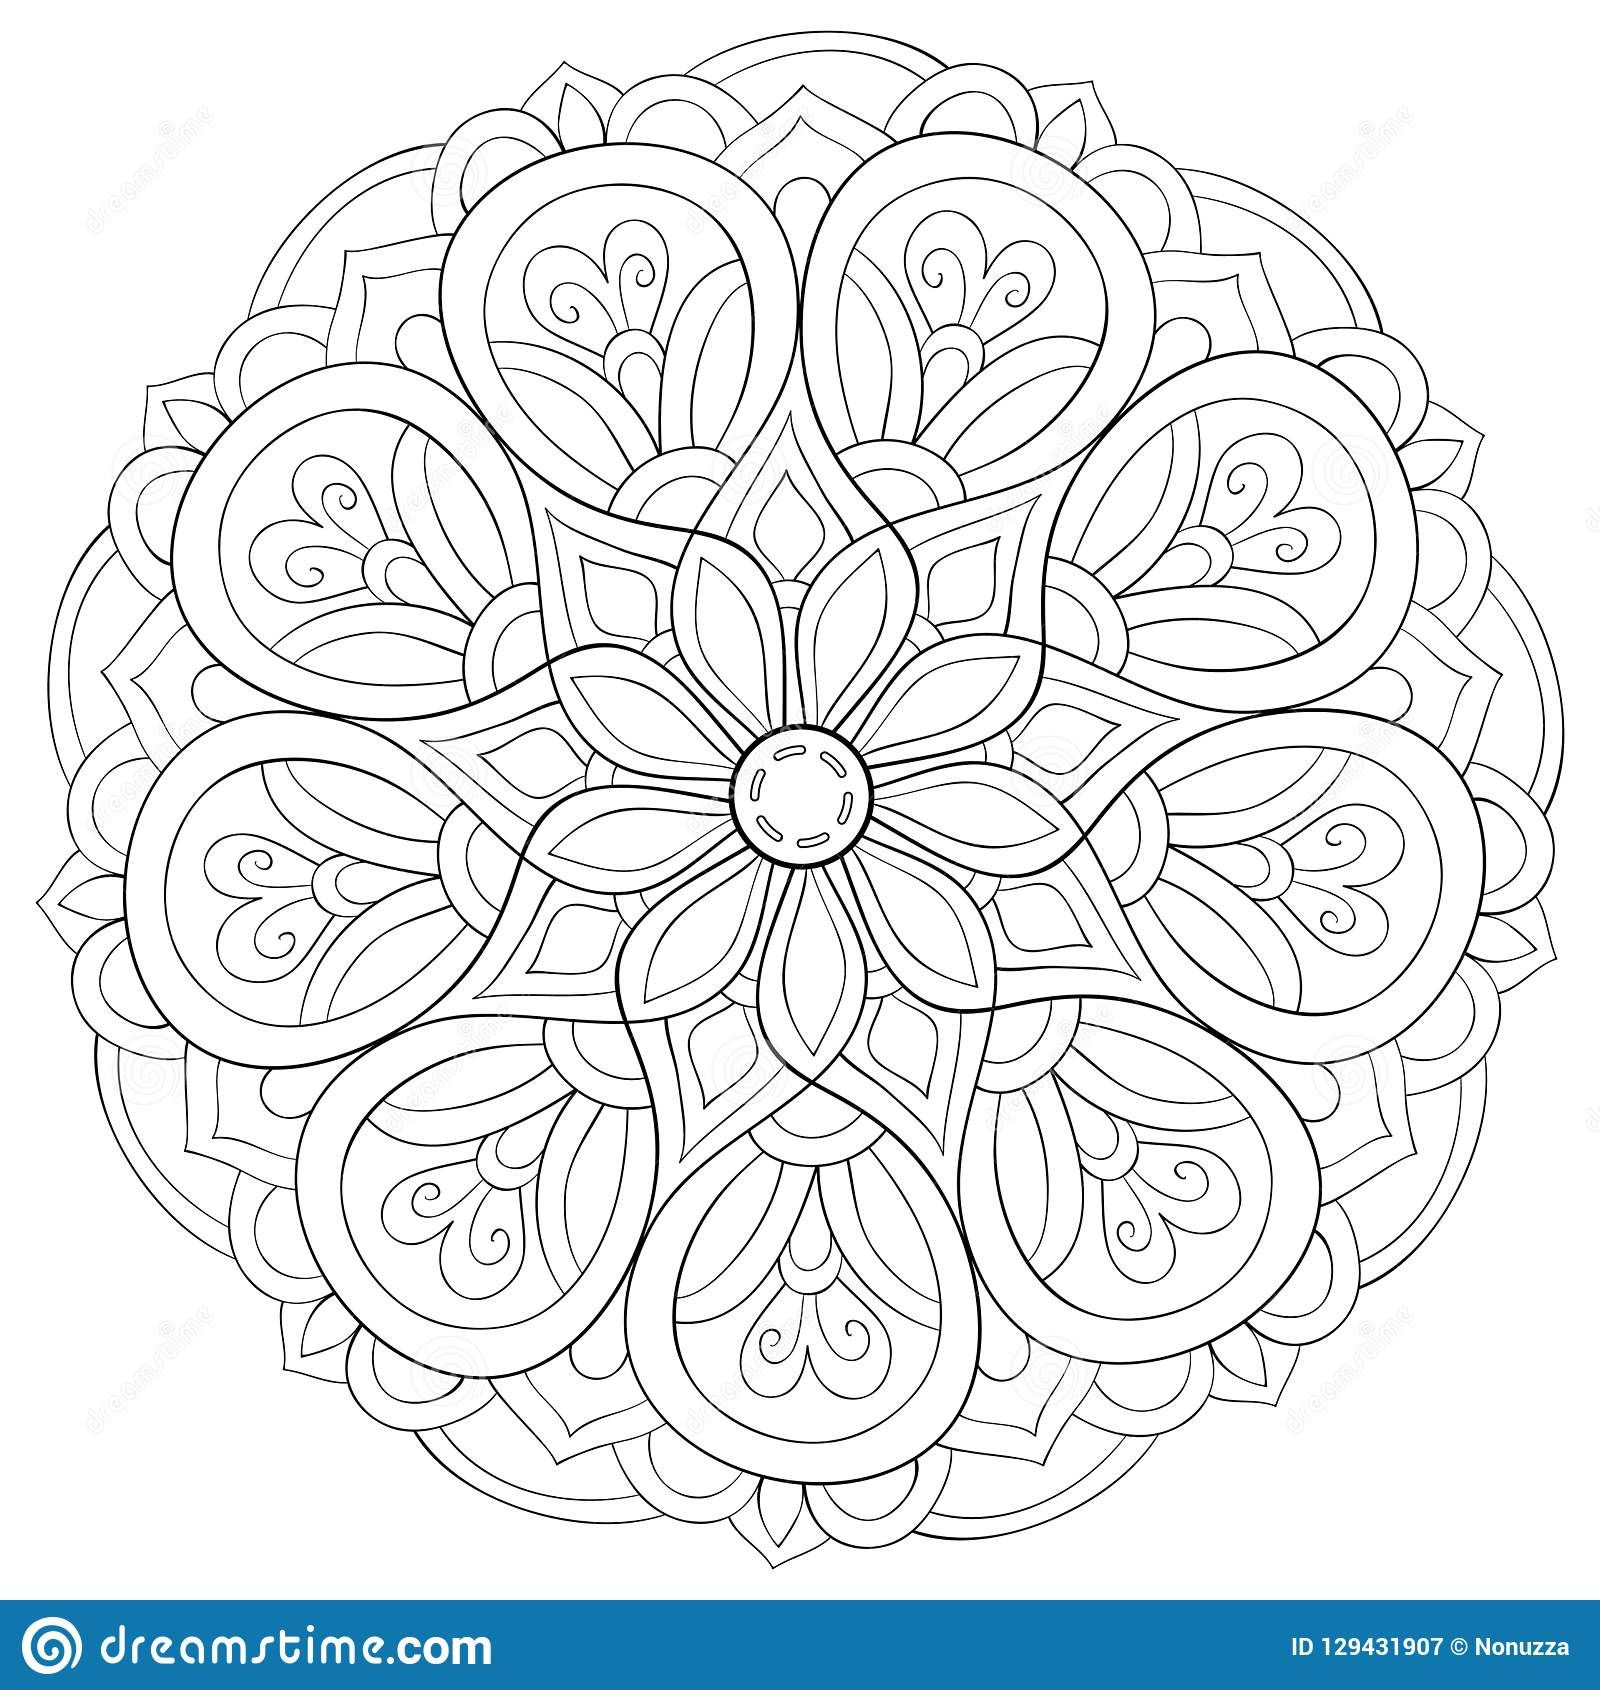 Pin On Coloring Pages Blank Adult Coloring [ 1690 x 1600 Pixel ]